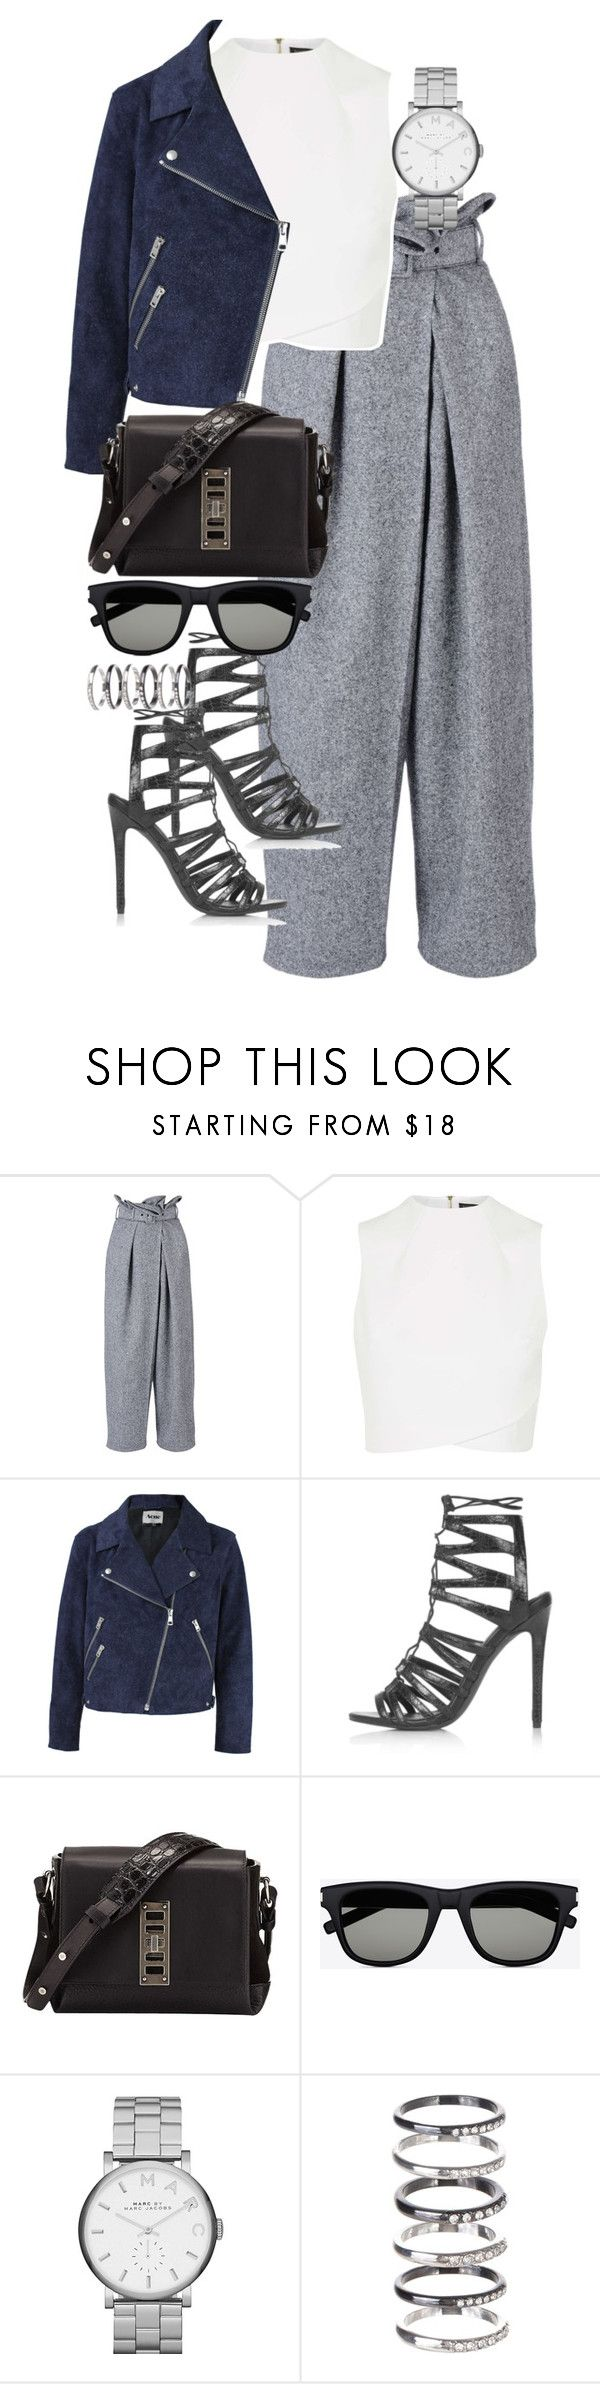 """Untitled #2849"" by angieswardrobe ❤ liked on Polyvore featuring STELLA McCARTNEY, Topshop, Acne Studios, Proenza Schouler, Yves Saint Laurent, Marc by Marc Jacobs and M.N.G"